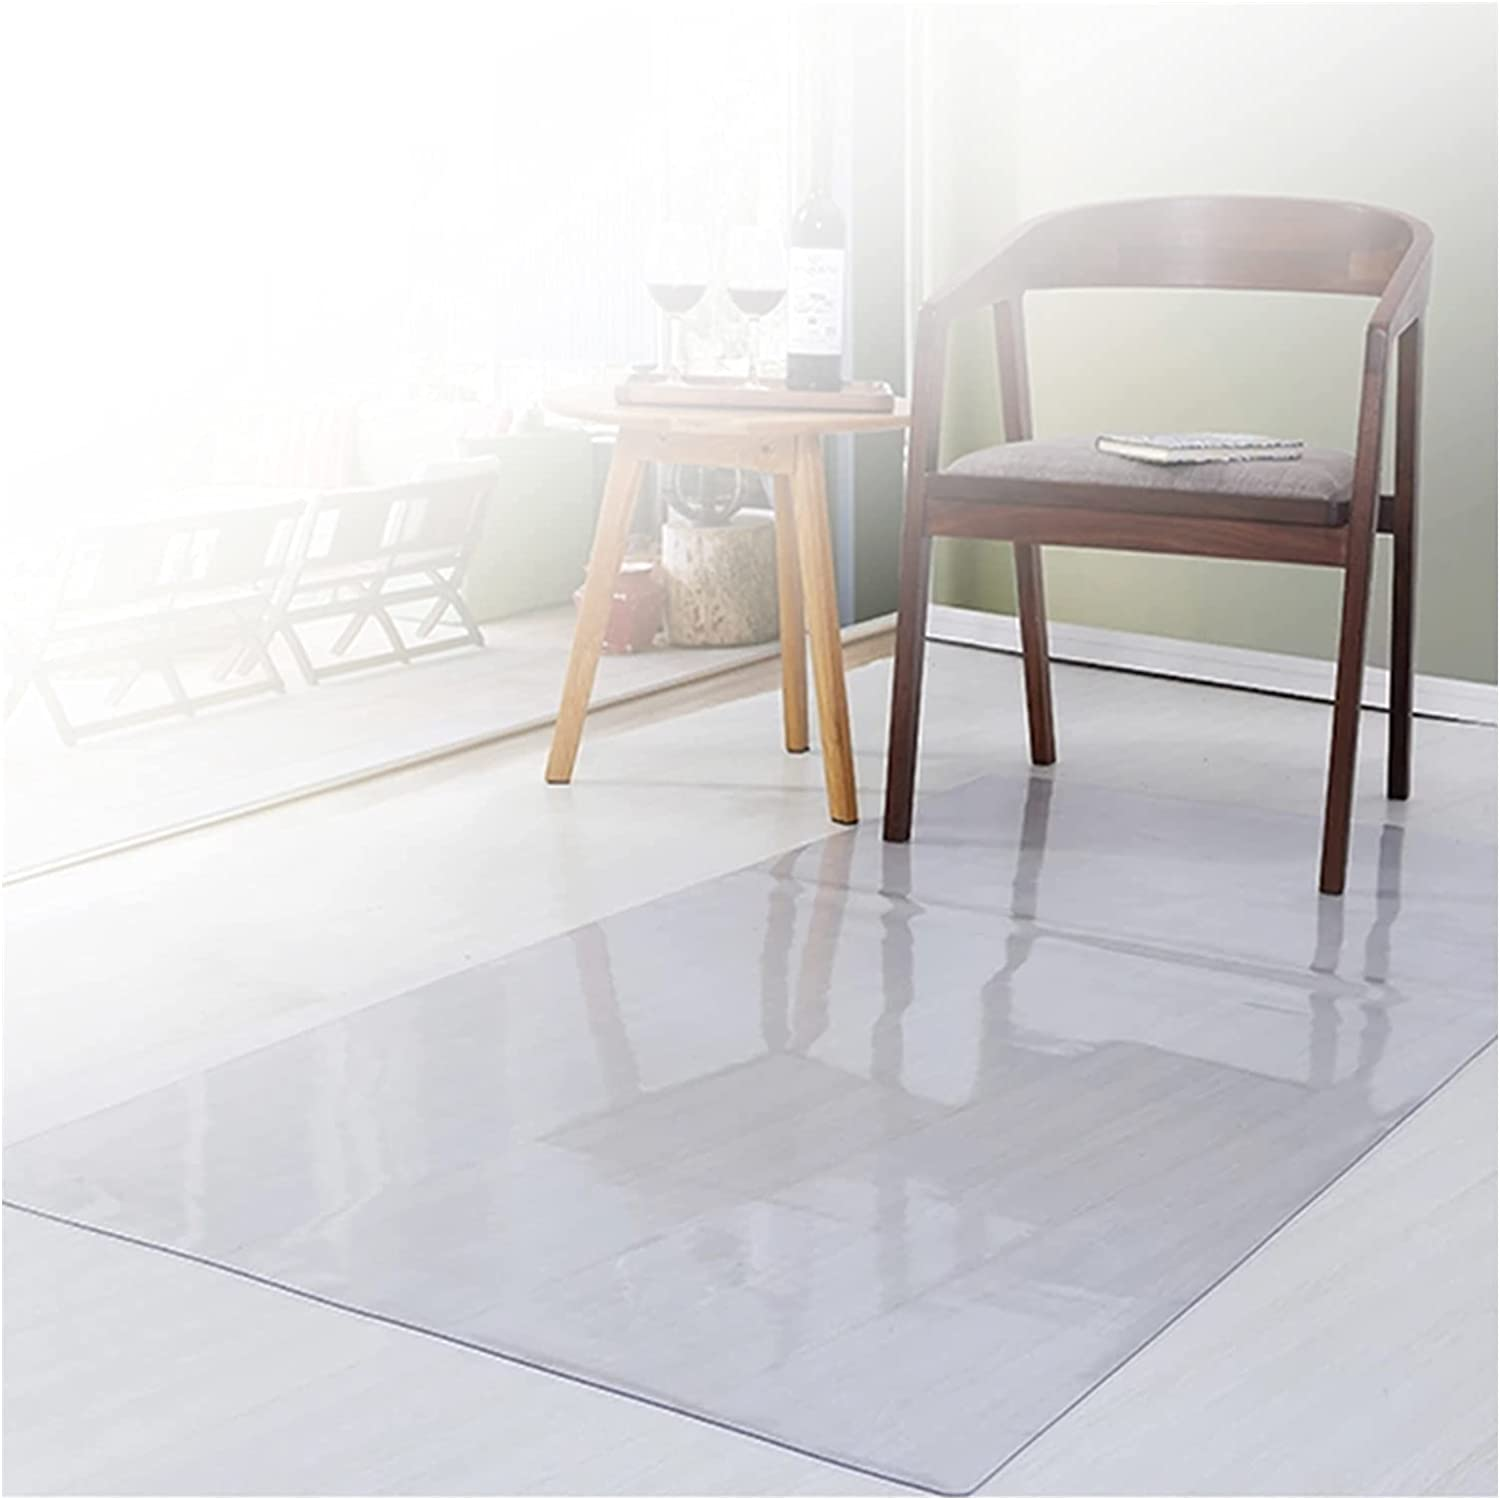 ZWYSL Customizable Clear Chair Mat Floor Carpet Free shipping anywhere in Max 86% OFF the nation Sou Protection